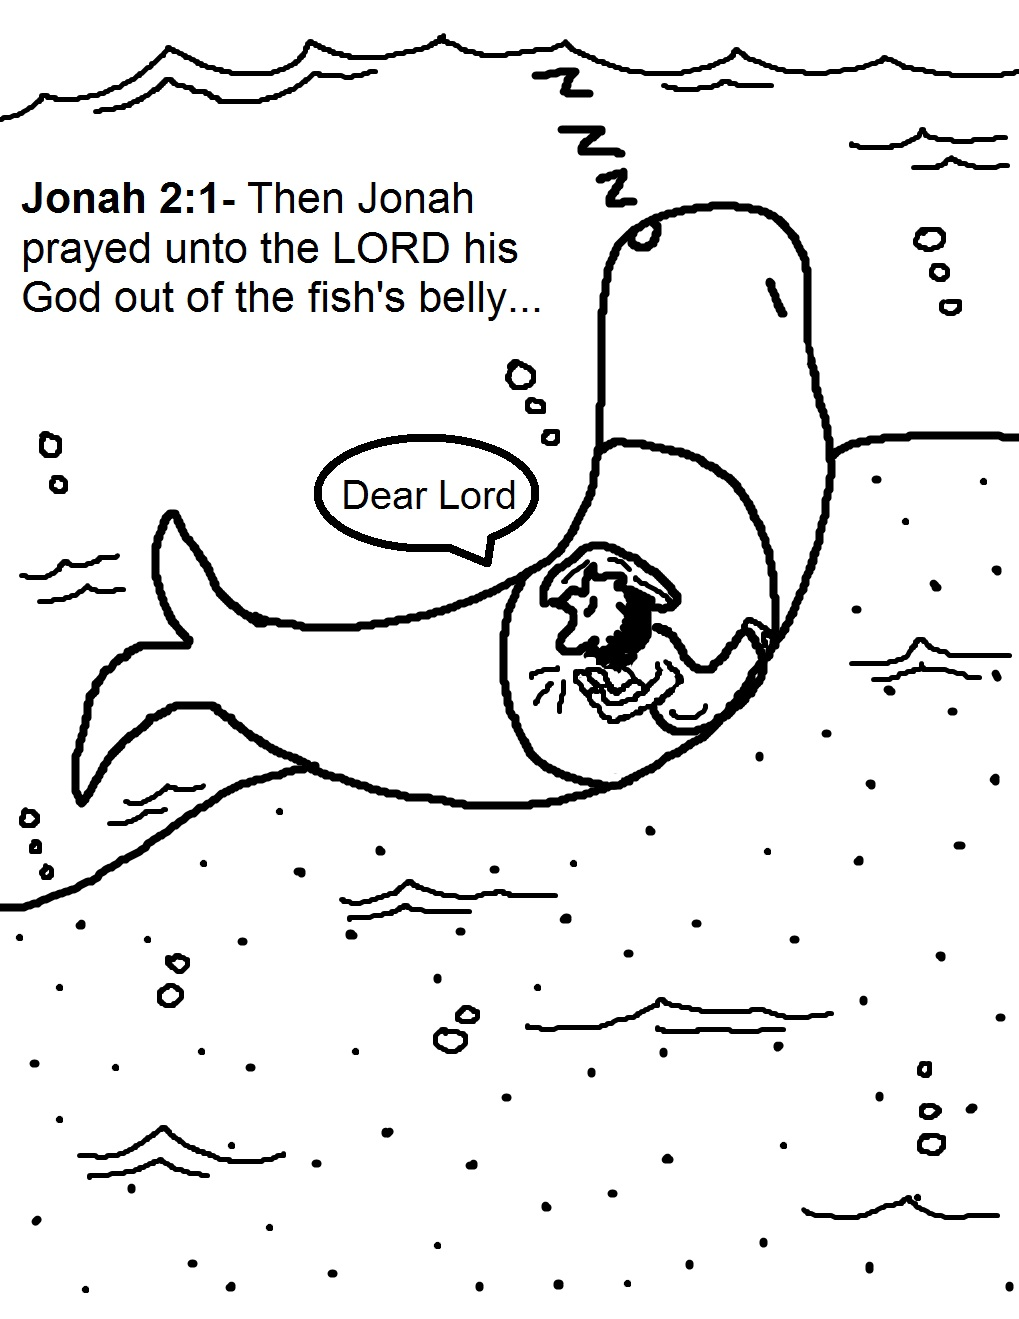 Jonah Coloring Pages Best Jonah And The Whale Coloring Pages Design Ideas